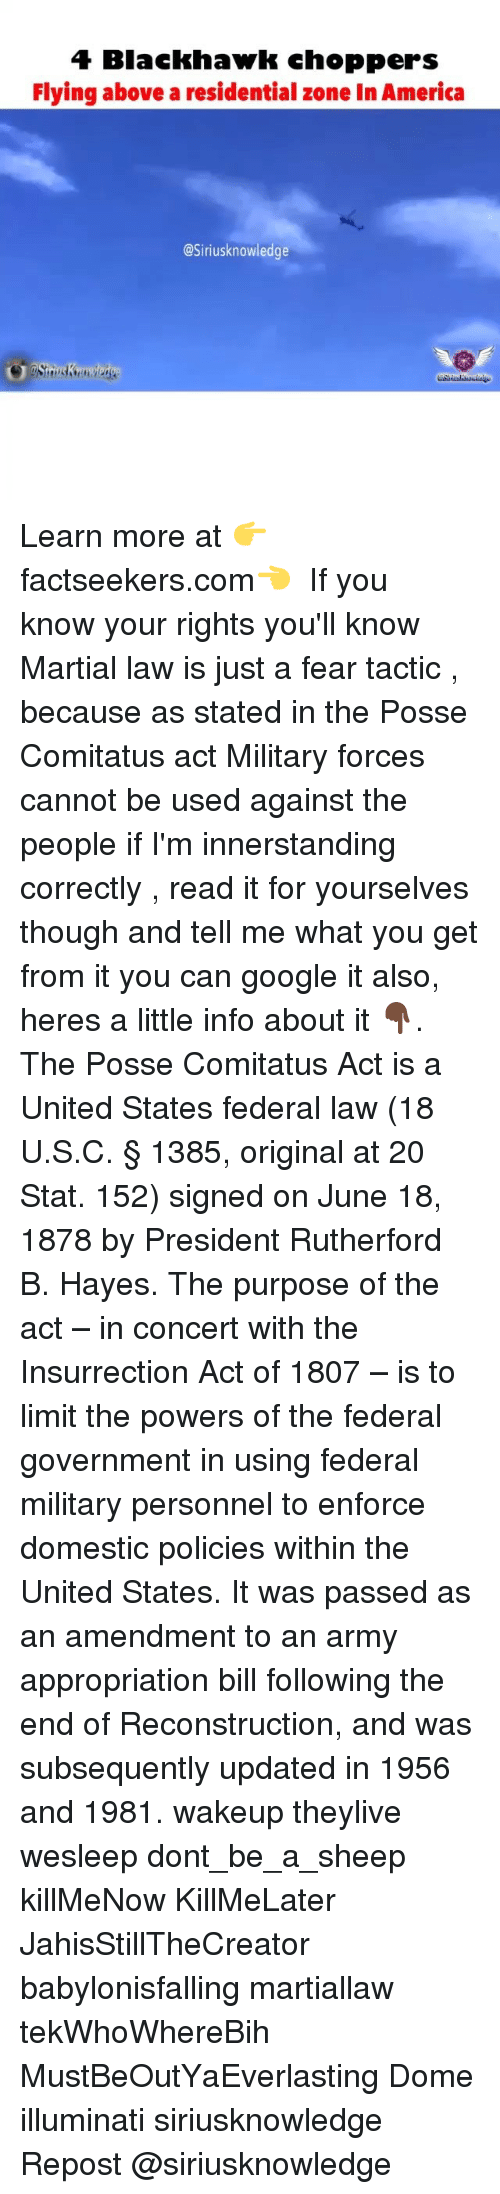 rutherfor b hayes domestic policies Start studying exam study guide-us history learn vocabulary,  woodrow wilson's domestic policy that,  rutherford b hayes.